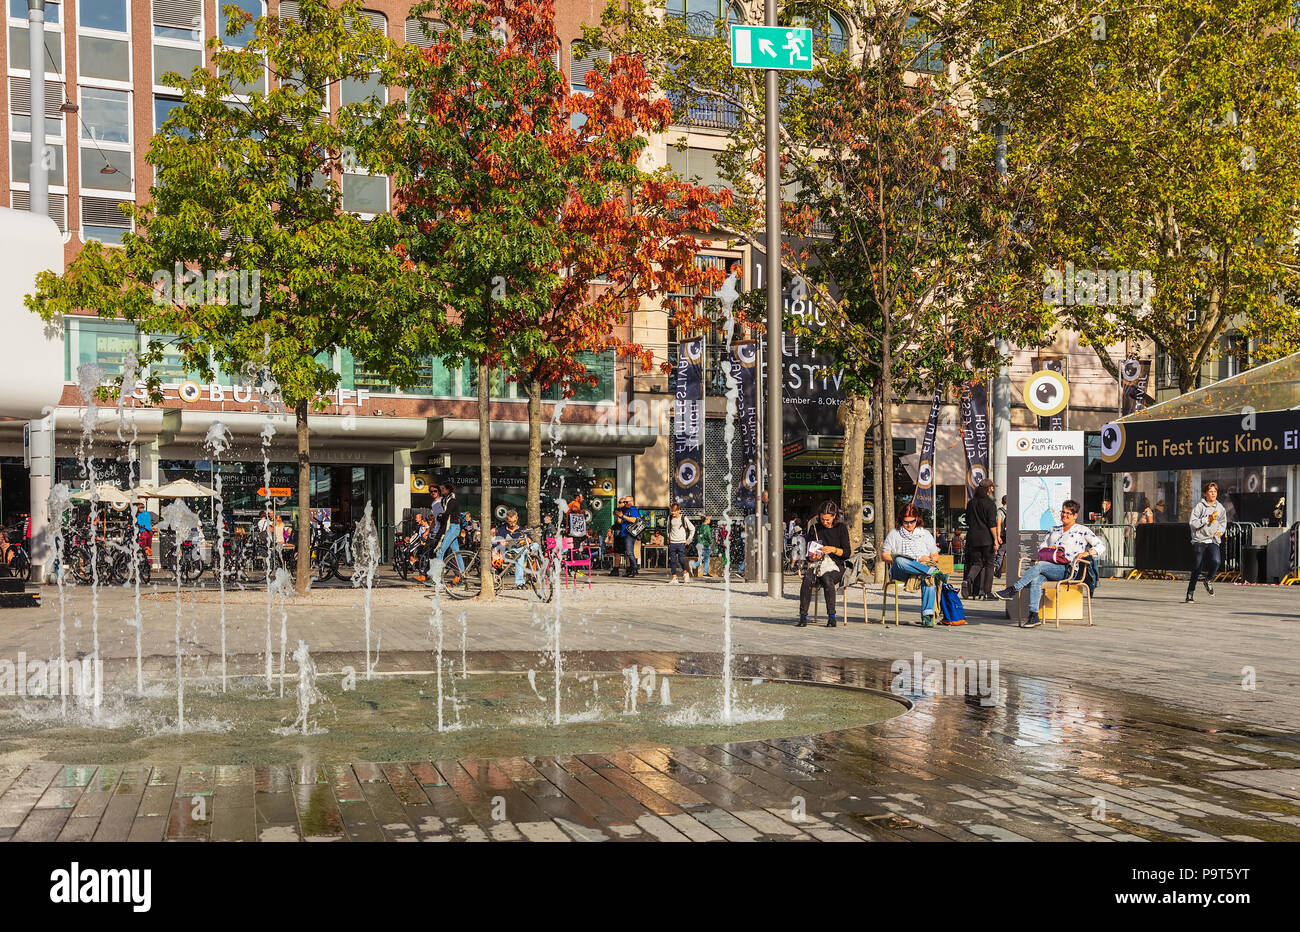 Zurich, Switzerland - September 29, 2017: people and the